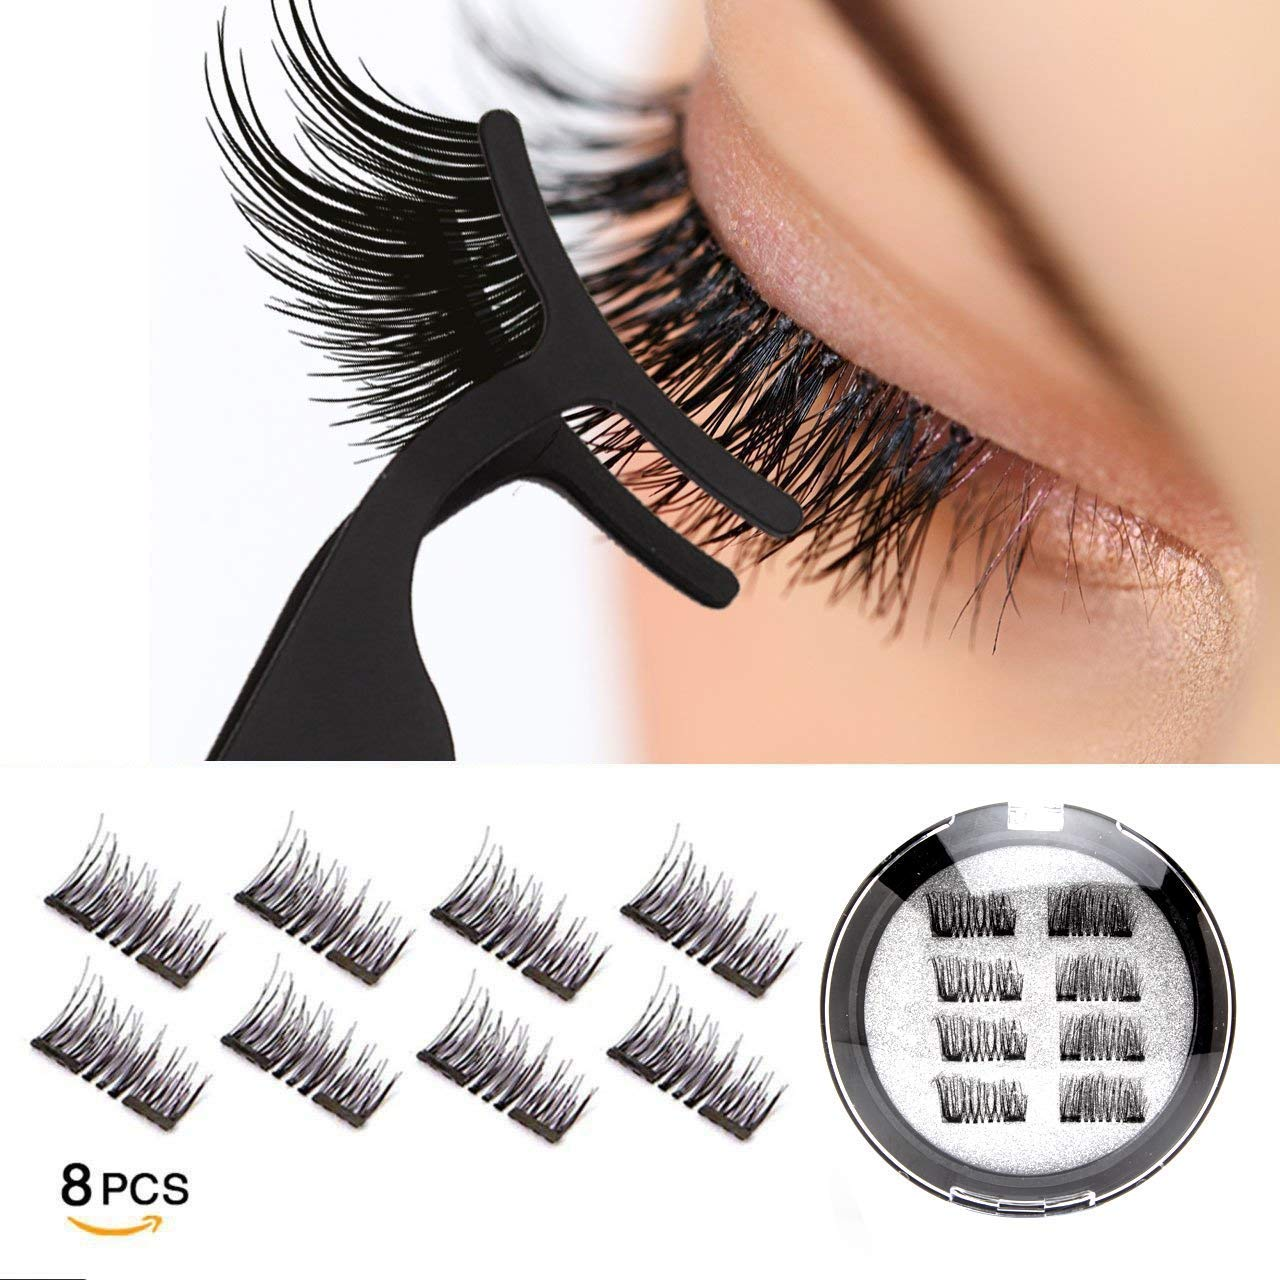 d425b8a8542 Amazon.com : Dual Magnetic Eyelashes-0.2mm Ultra Thin Magnet-Lightweight &  Easy to Wear-Best 3D Reusable Eyelashes Extensions With Tweezers (Black) :  Beauty